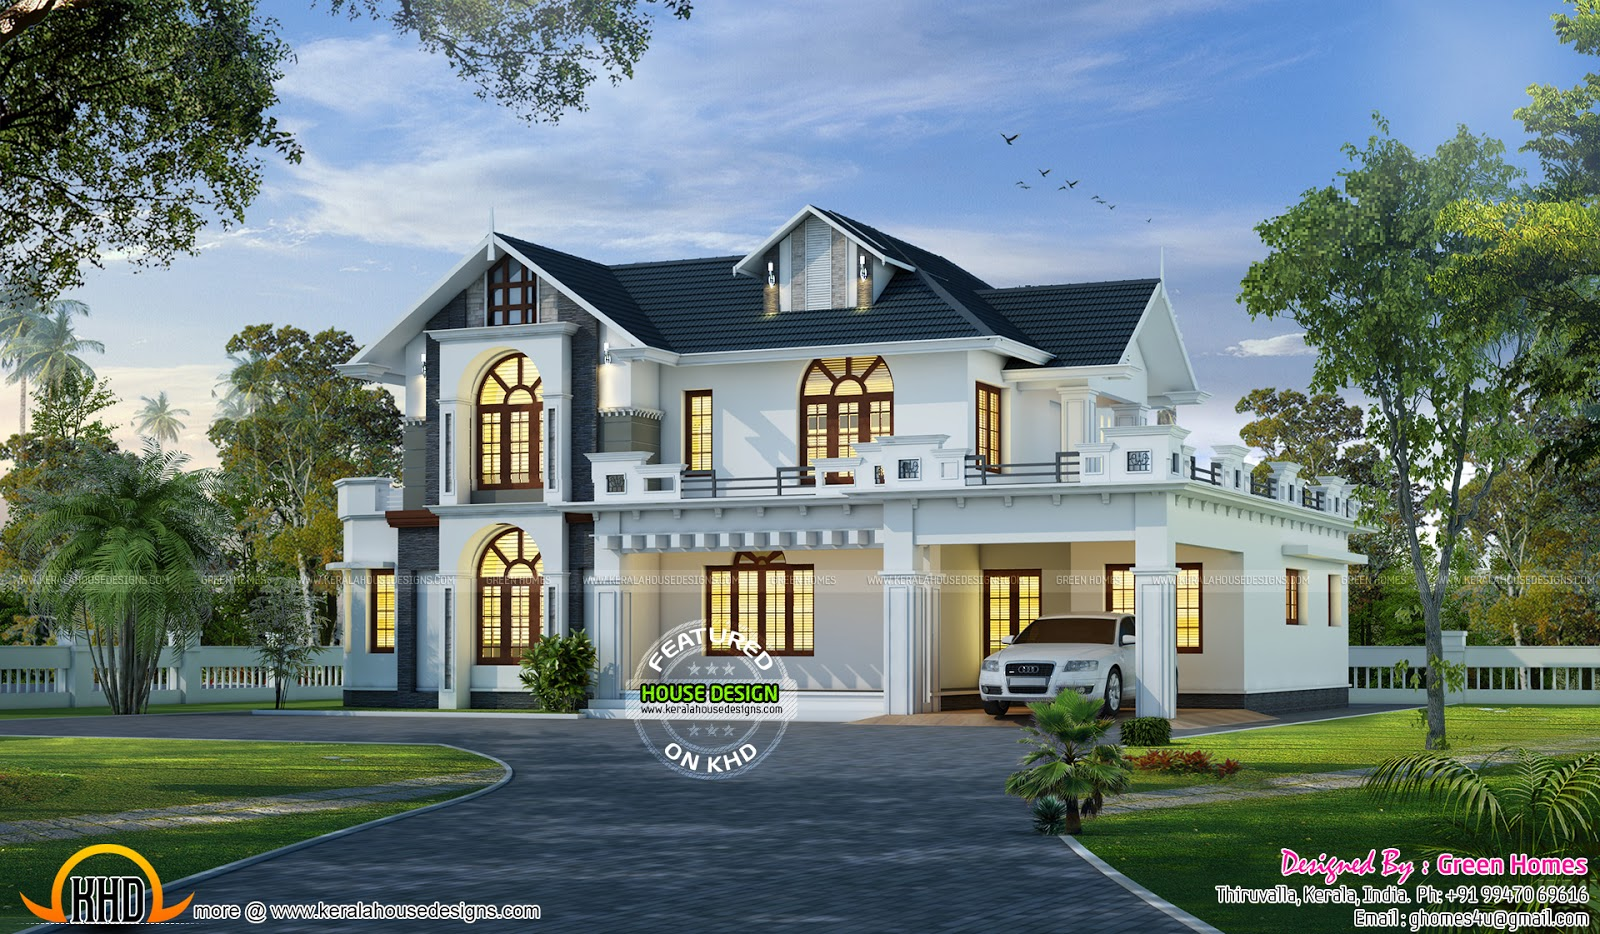 Wonderful house design kerala home design and floor plans for Www homedesign com